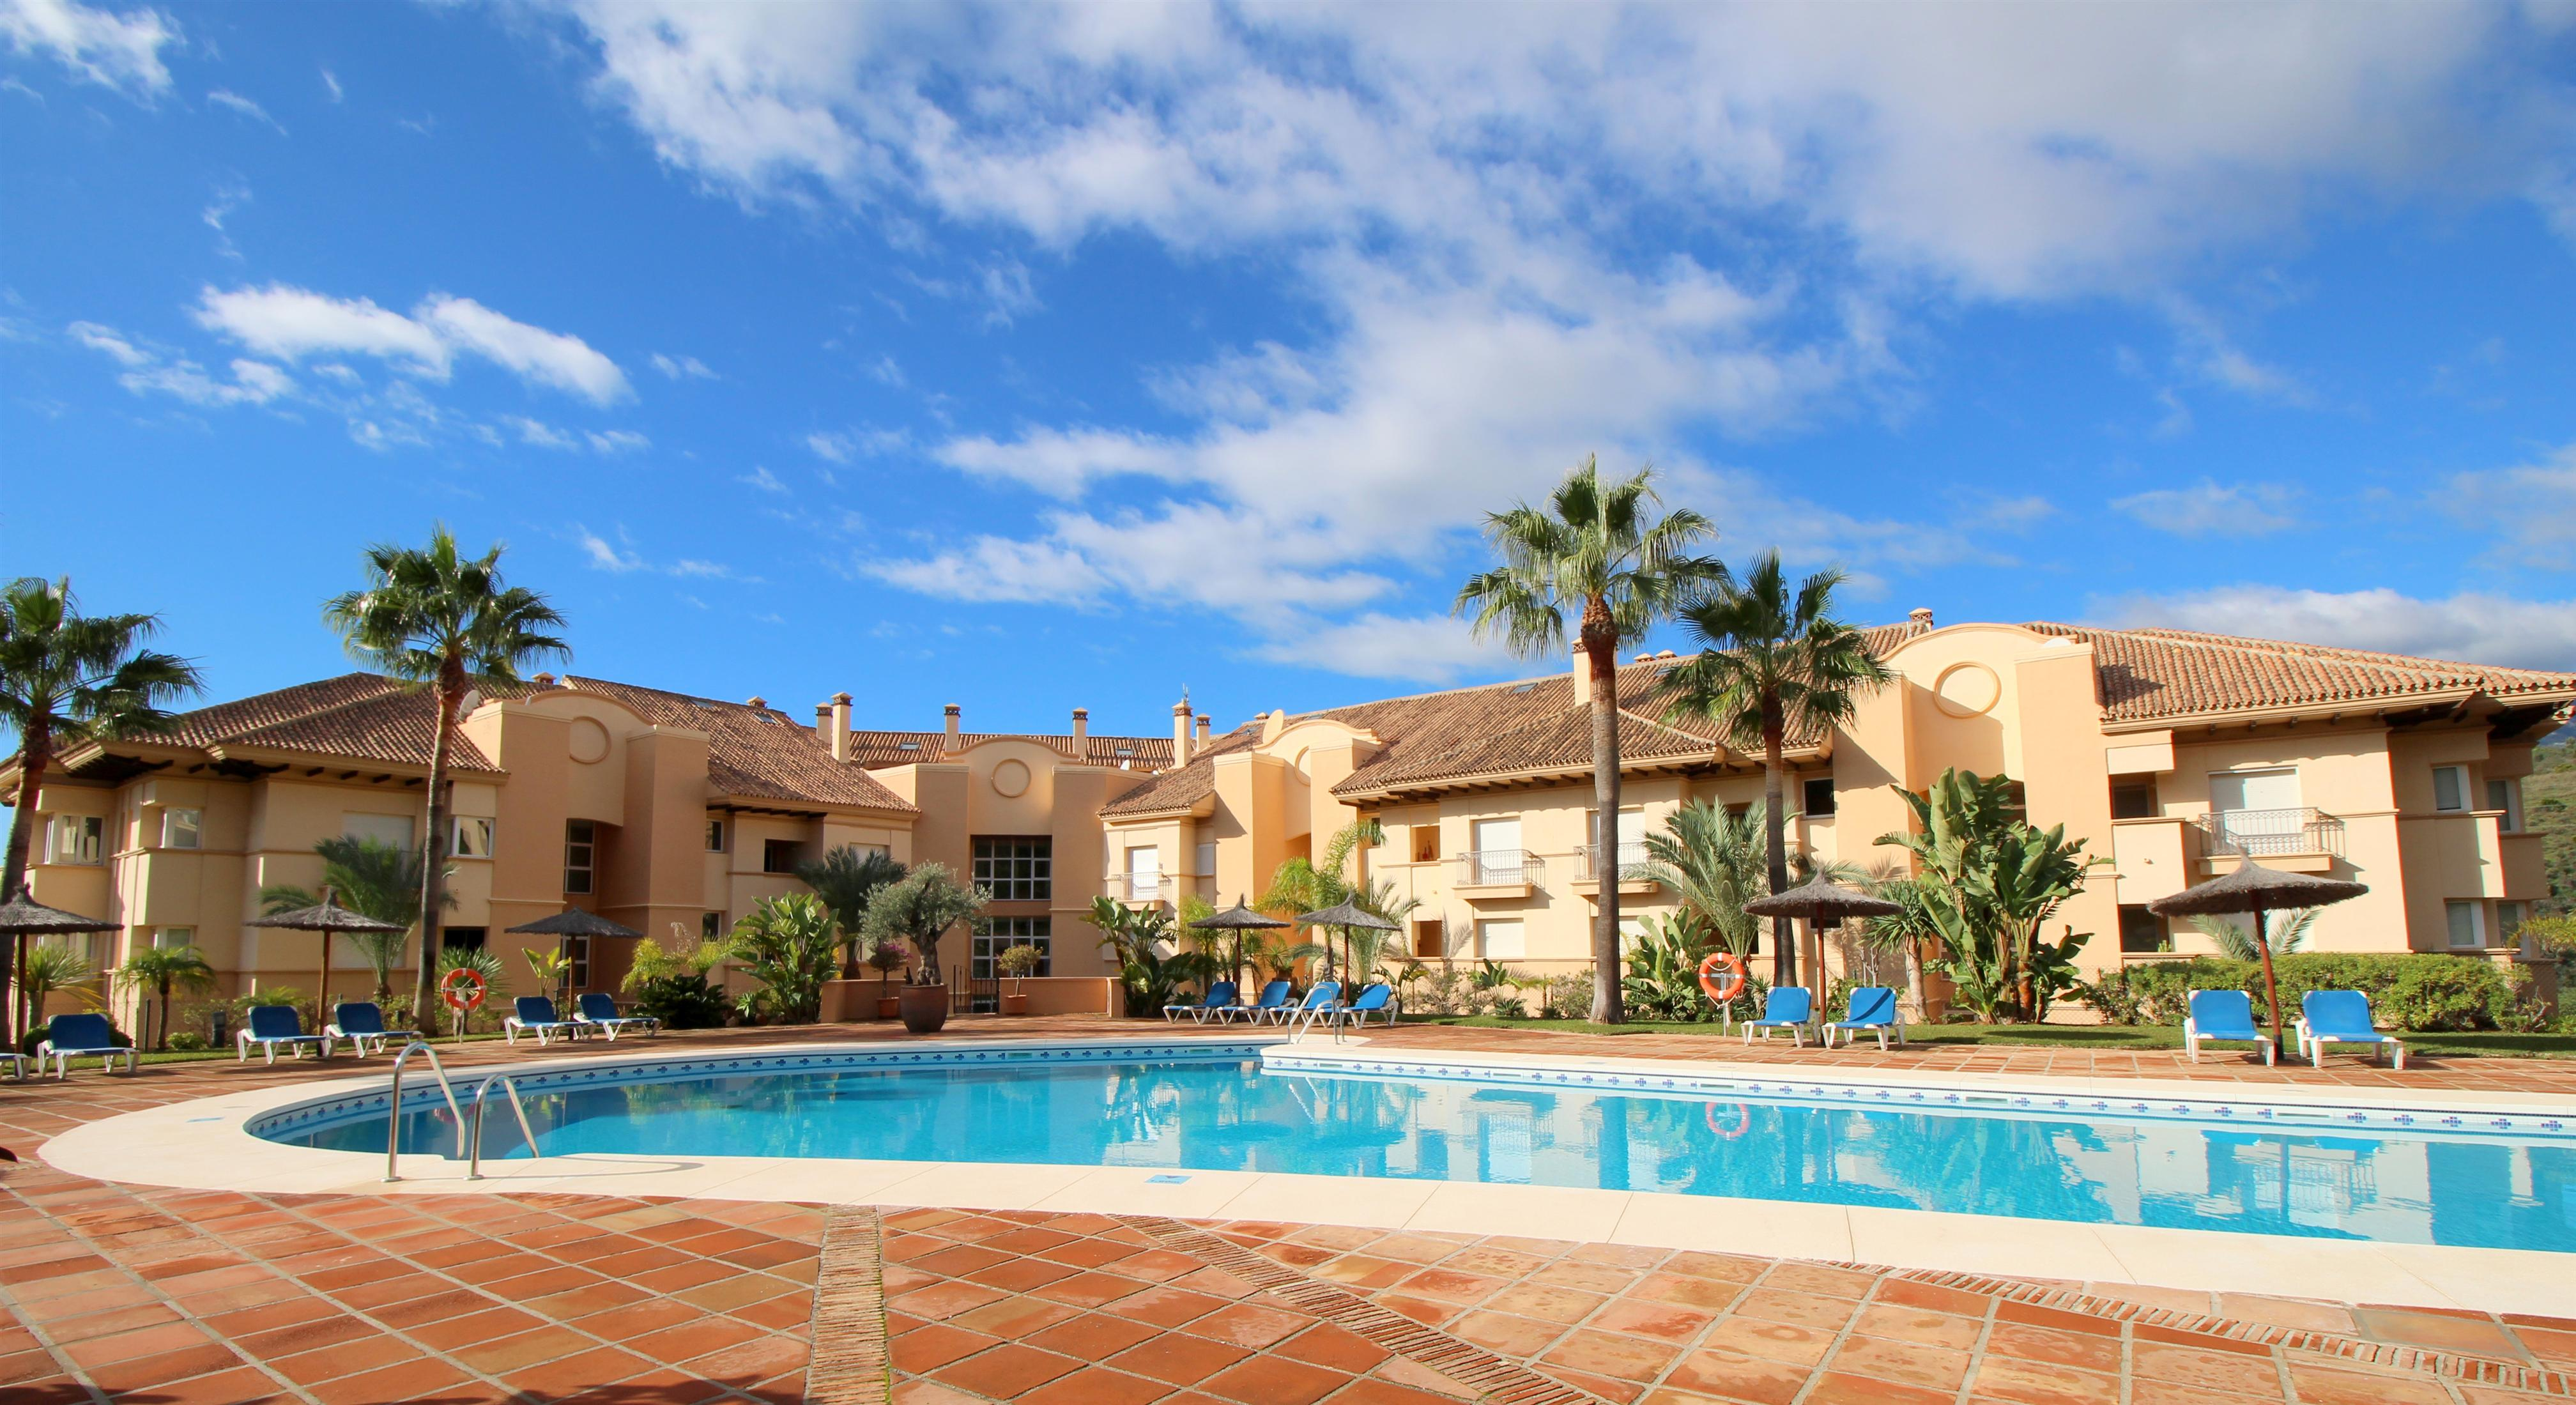 Outstanding apartment by the golf course at unbeatable price: 295.000€